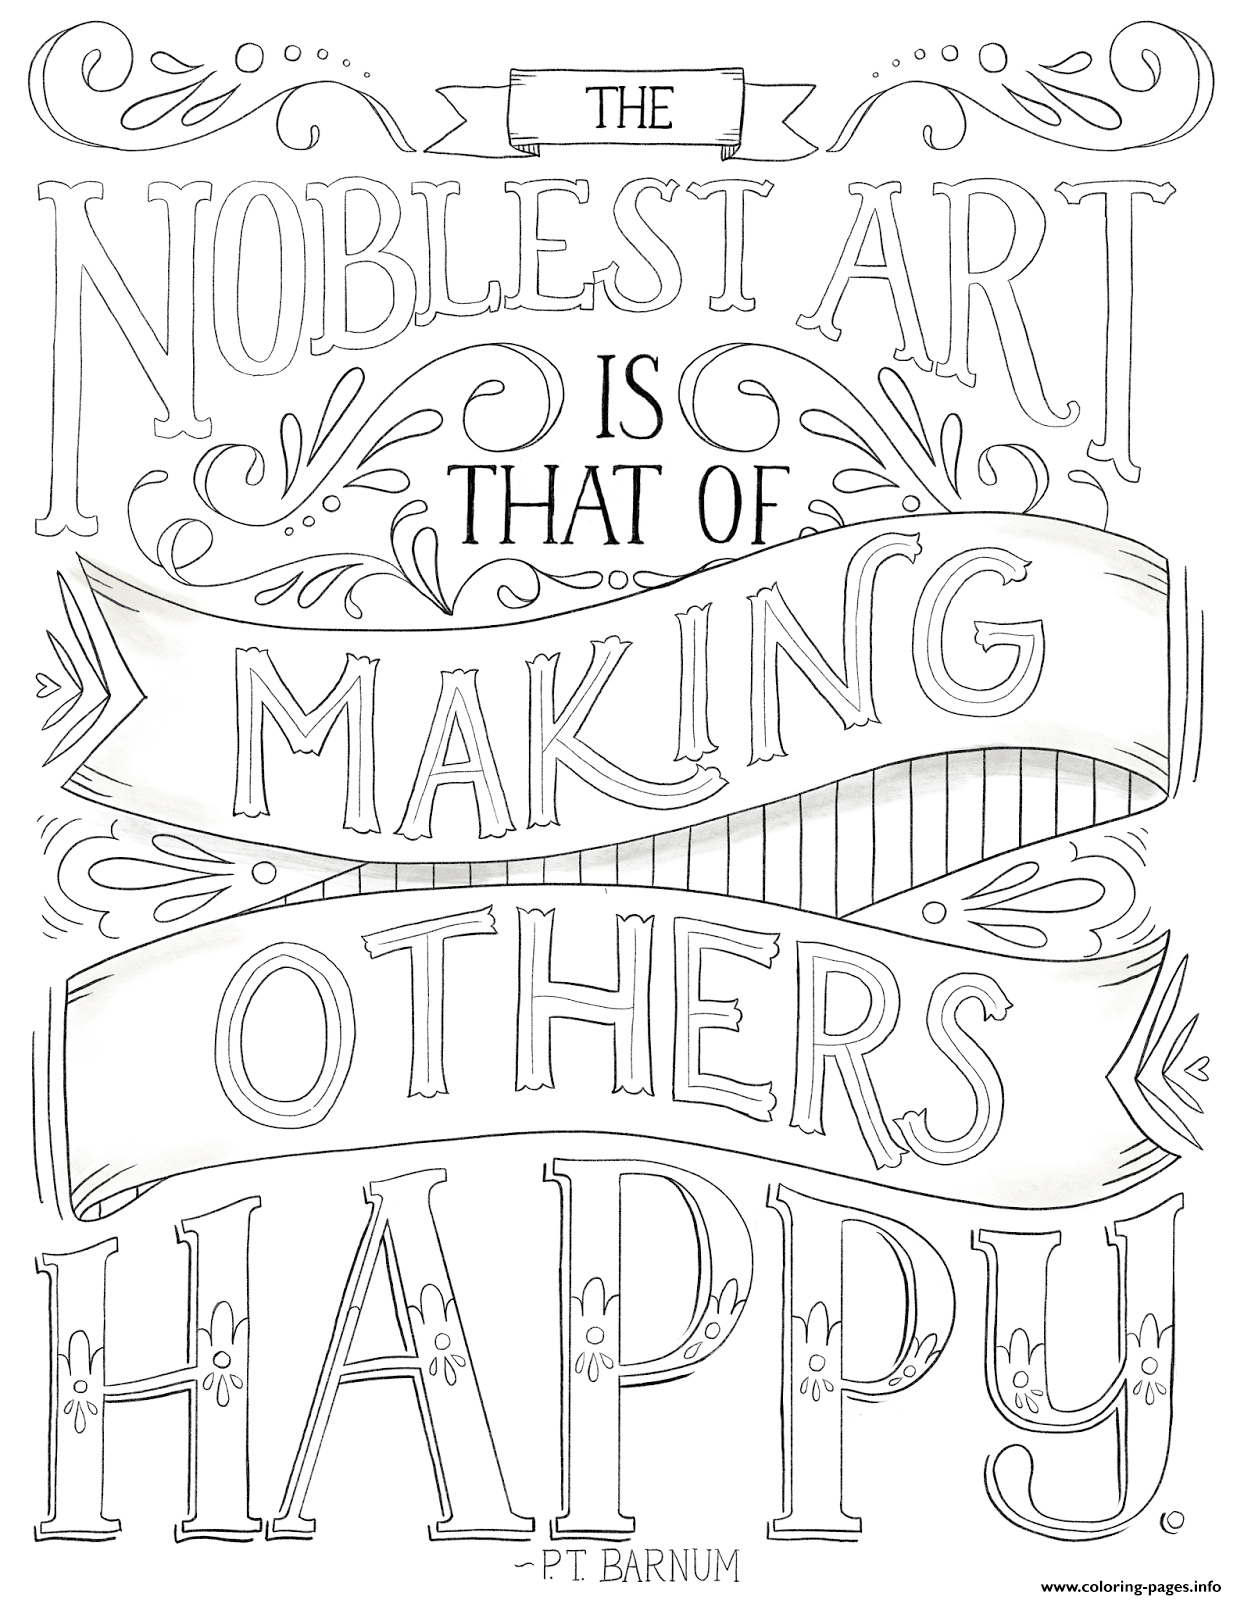 Art Is Making Others Happy coloring pages